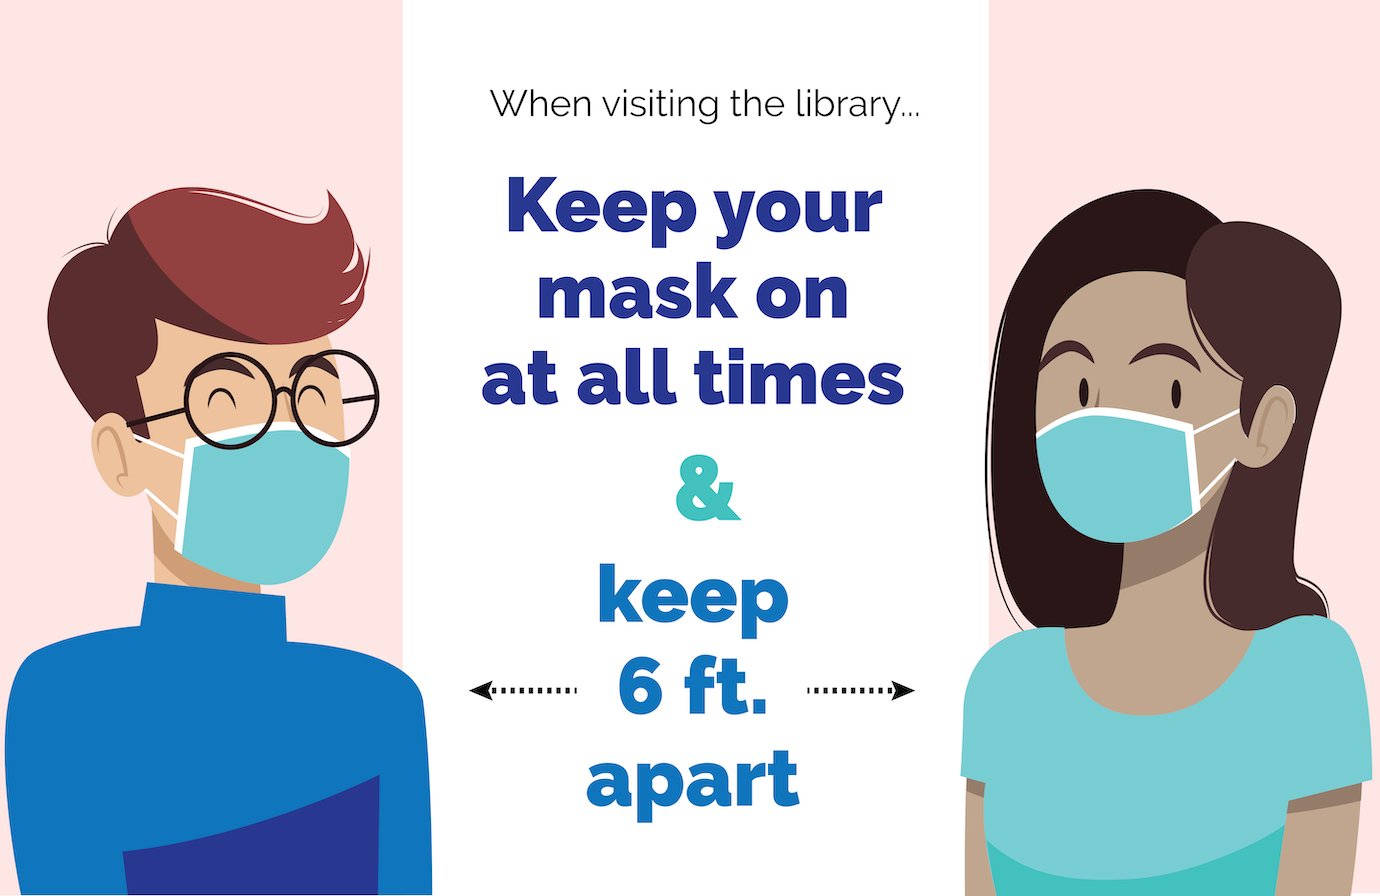 When visiting the library, wear a mask at all times & keep 6 ft. apart